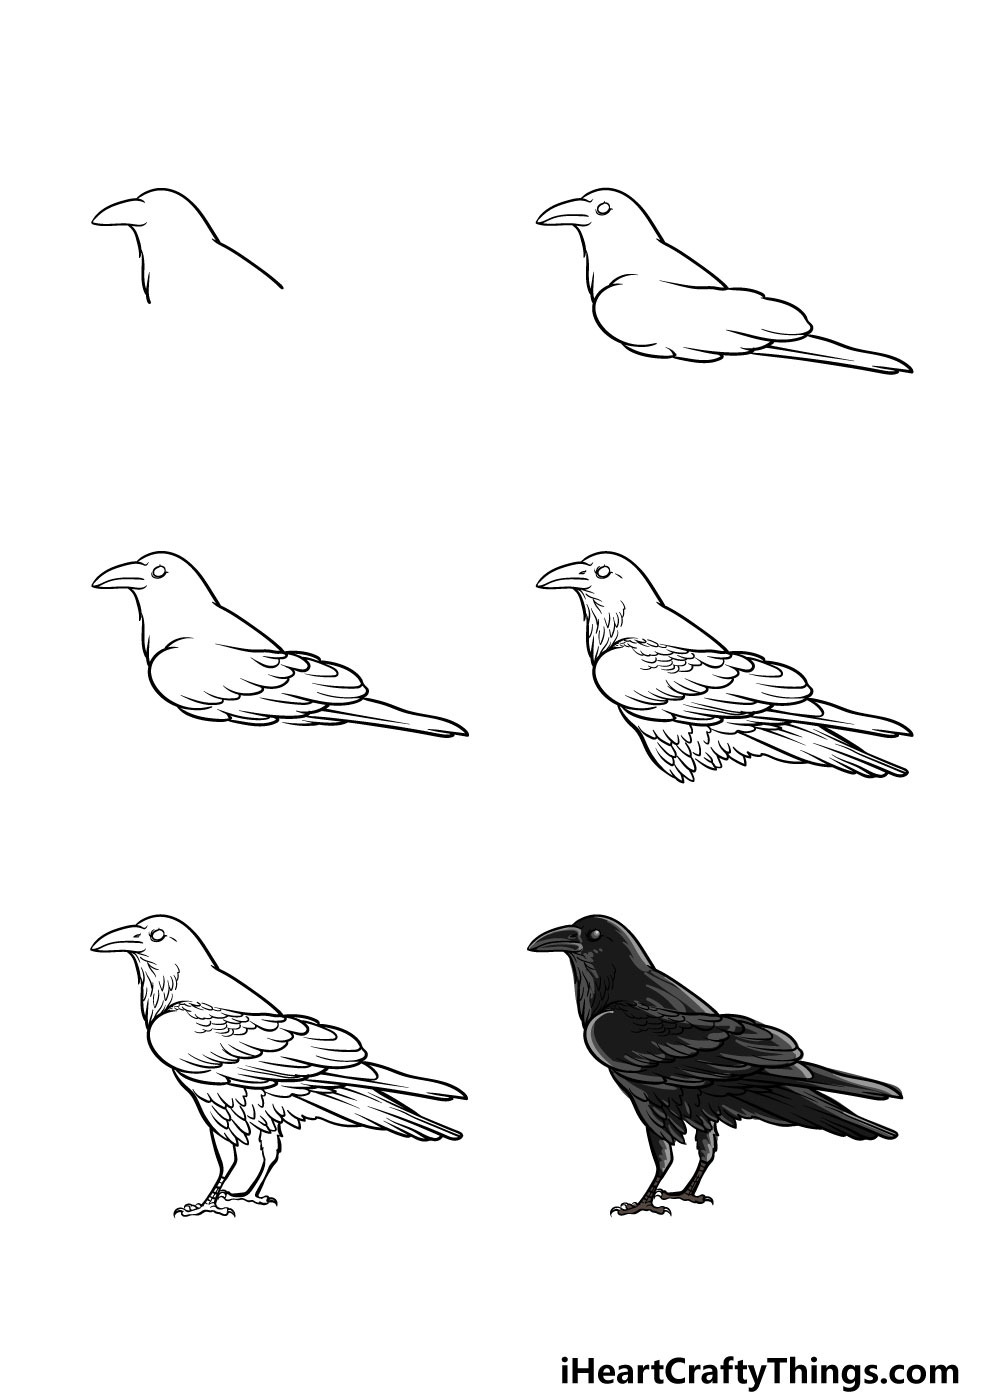 how to draw a crow in 6 steps